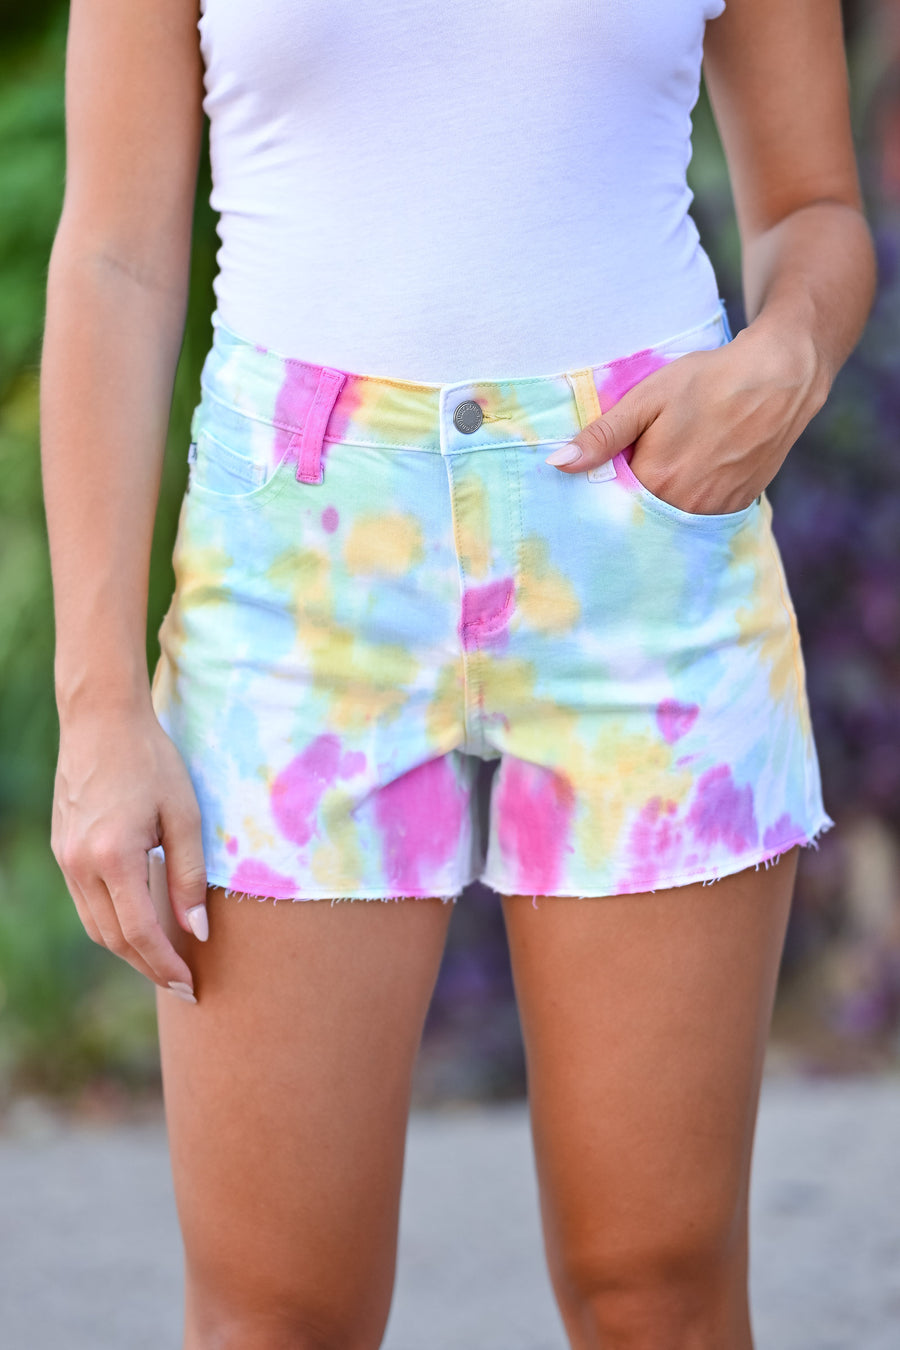 JUDY BLUE Raw Hem Denim Shorts - Tie Dye womens trendy tie dye shorts closet candy front